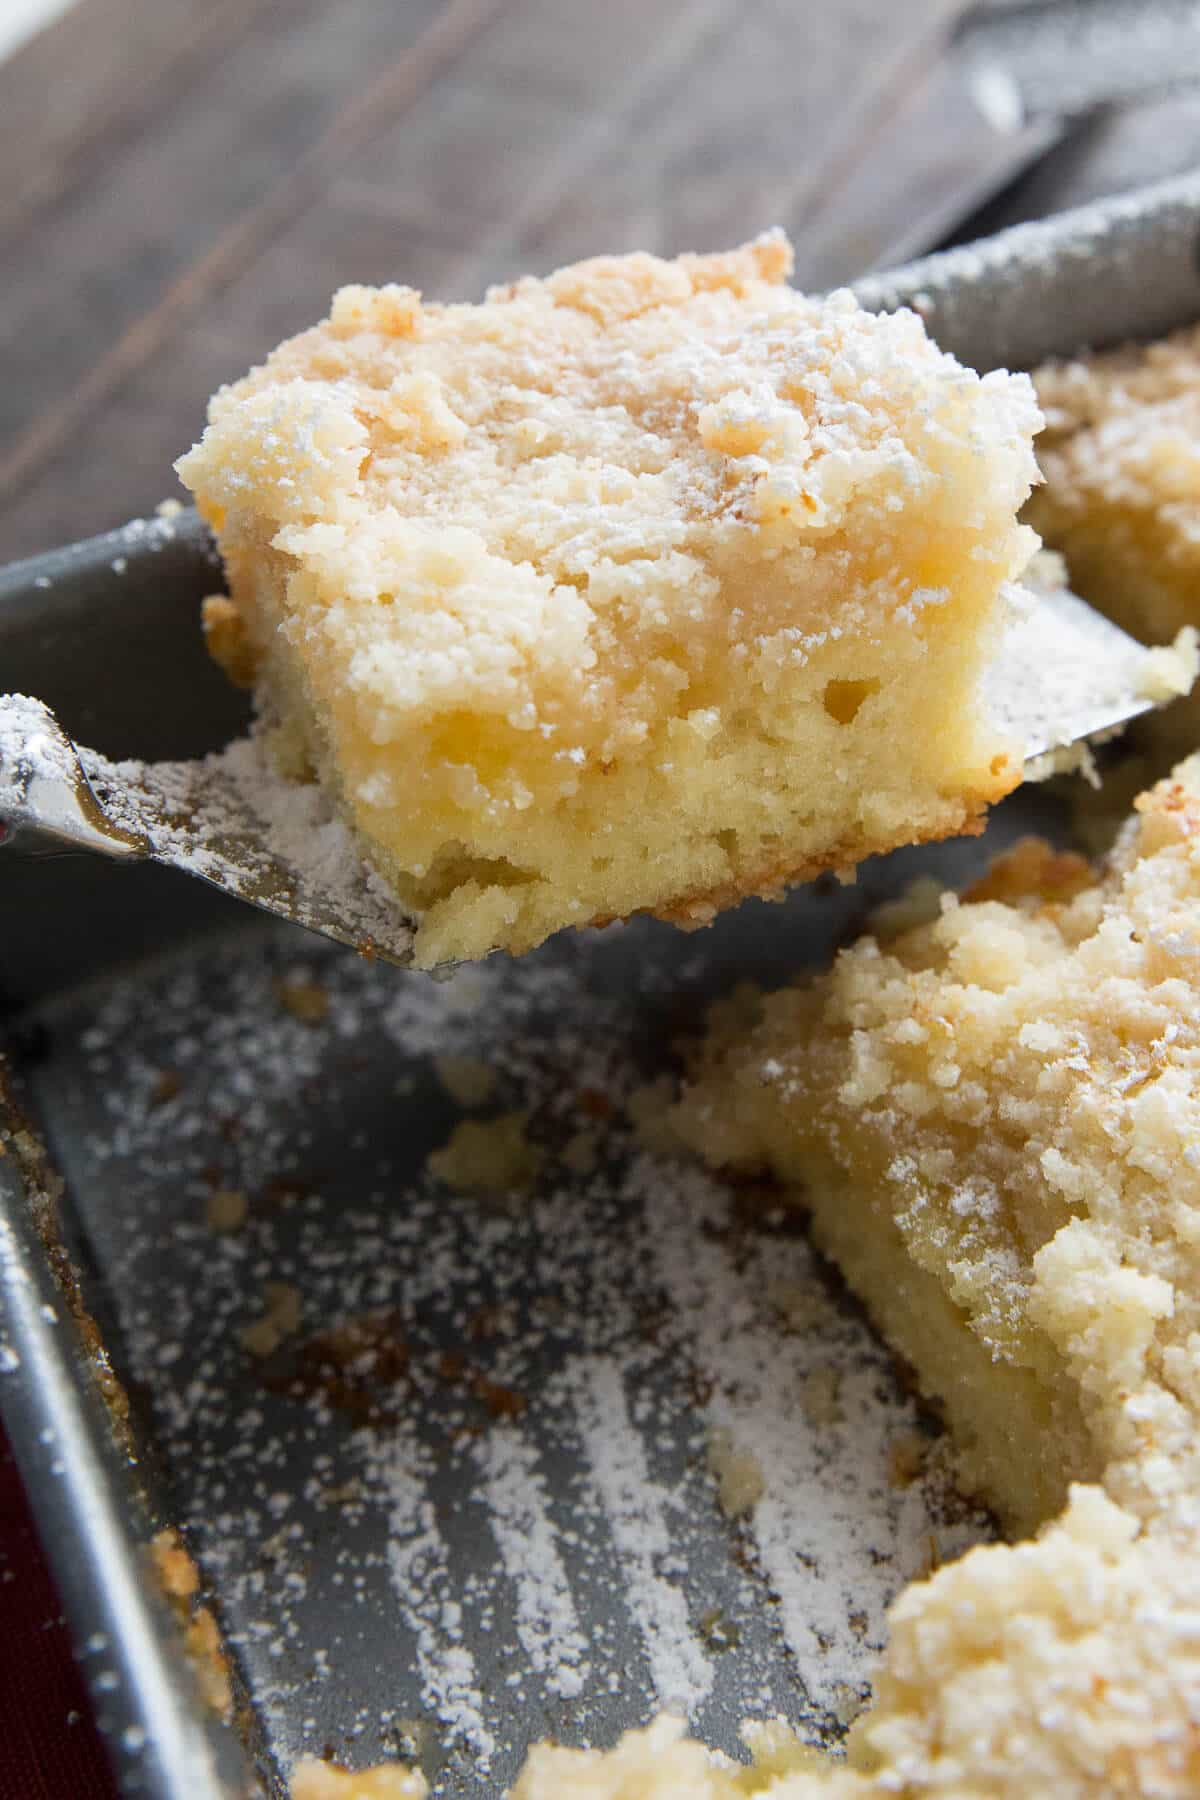 A tender crumb cake that is filled with lemon flavor cannot be beat! All it needs is a cup of tea!